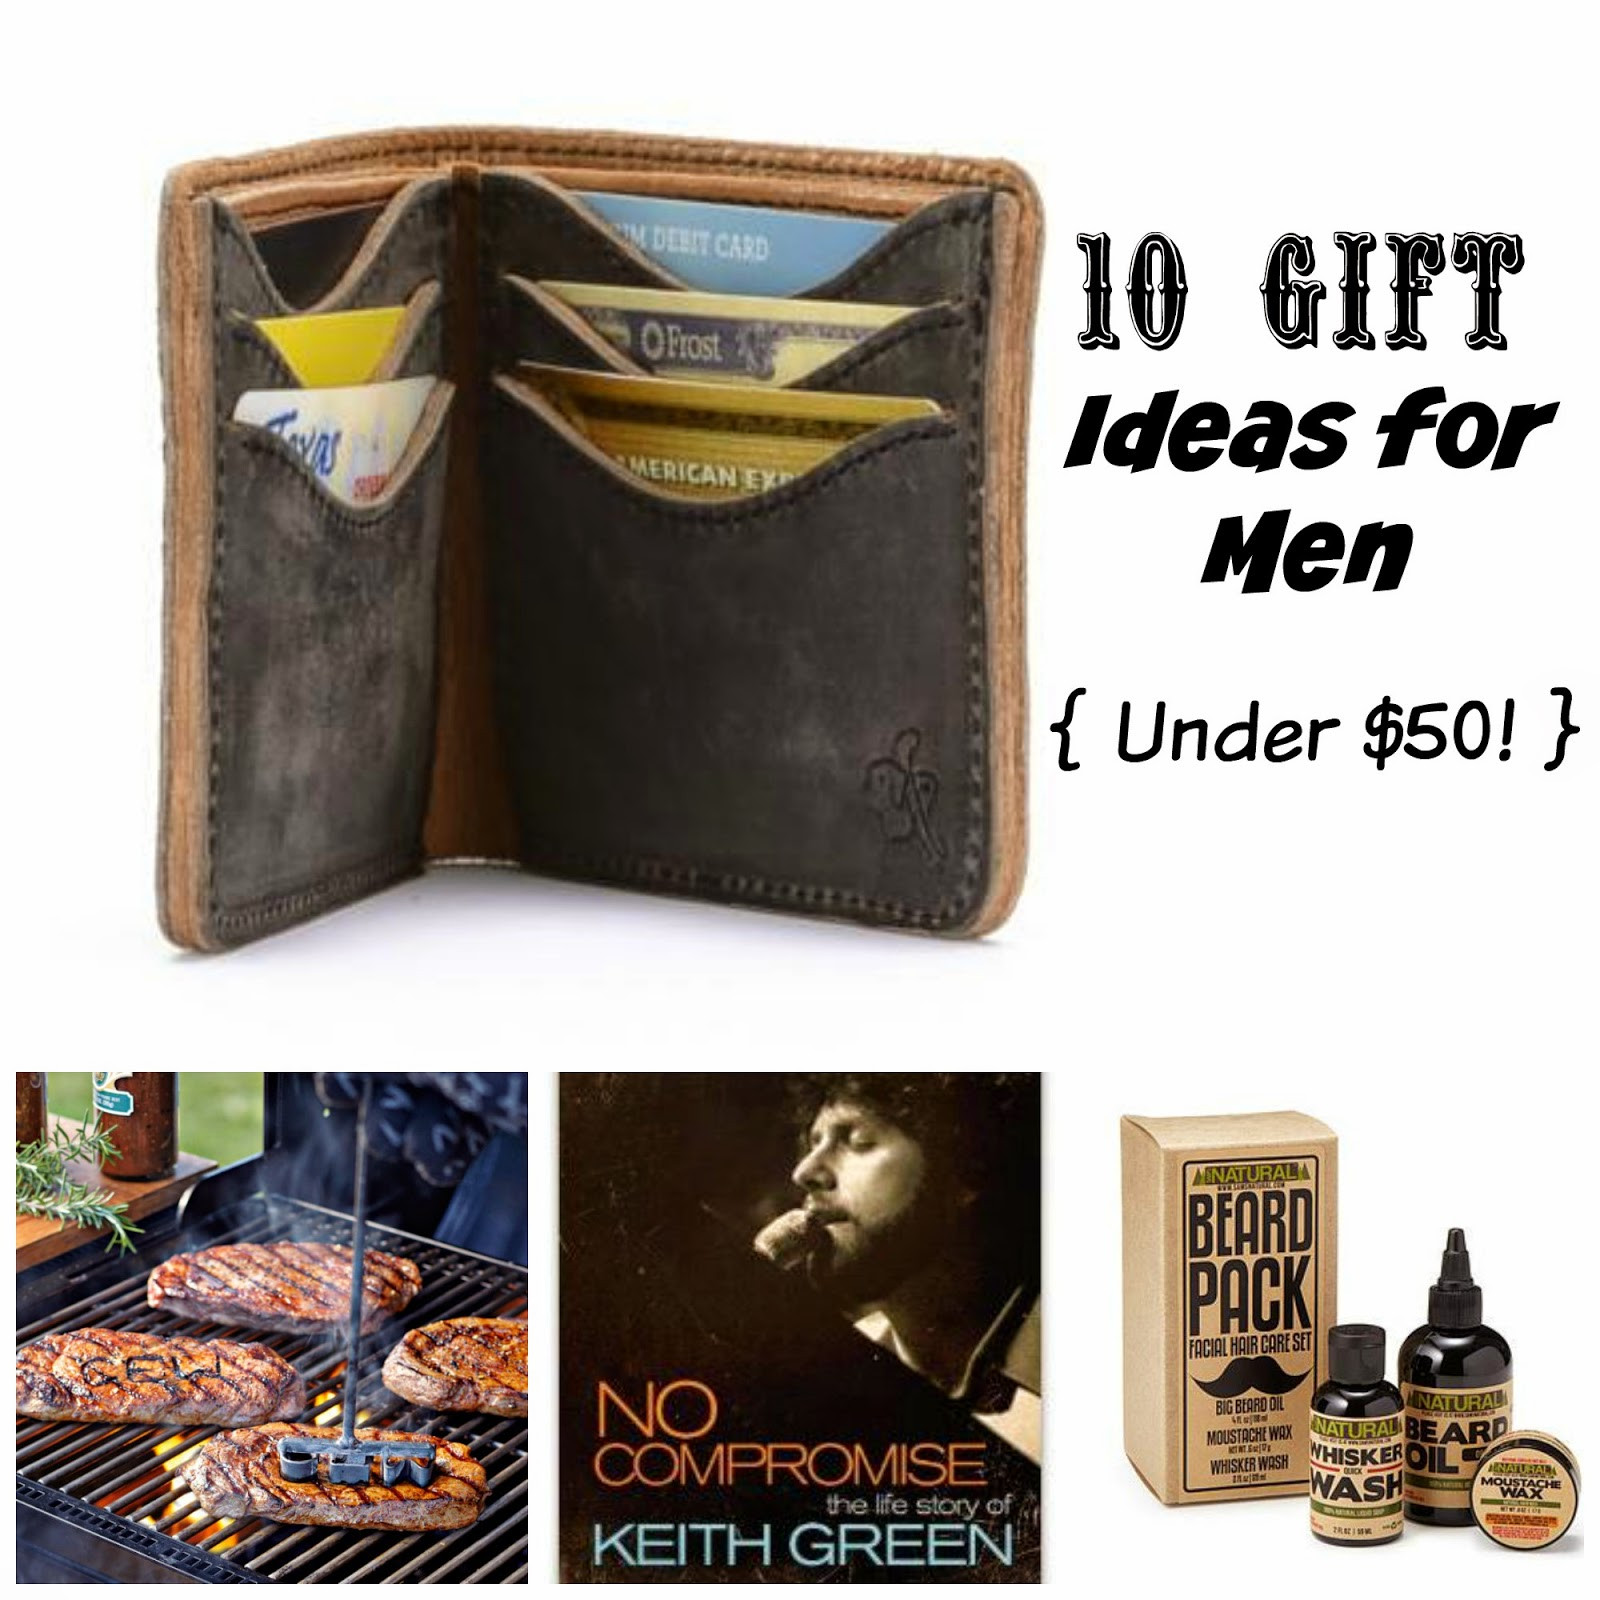 Best ideas about Gift Ideas Under 50 . Save or Pin Where Joy Is 10 Gift Ideas for Men Under $50 Now.